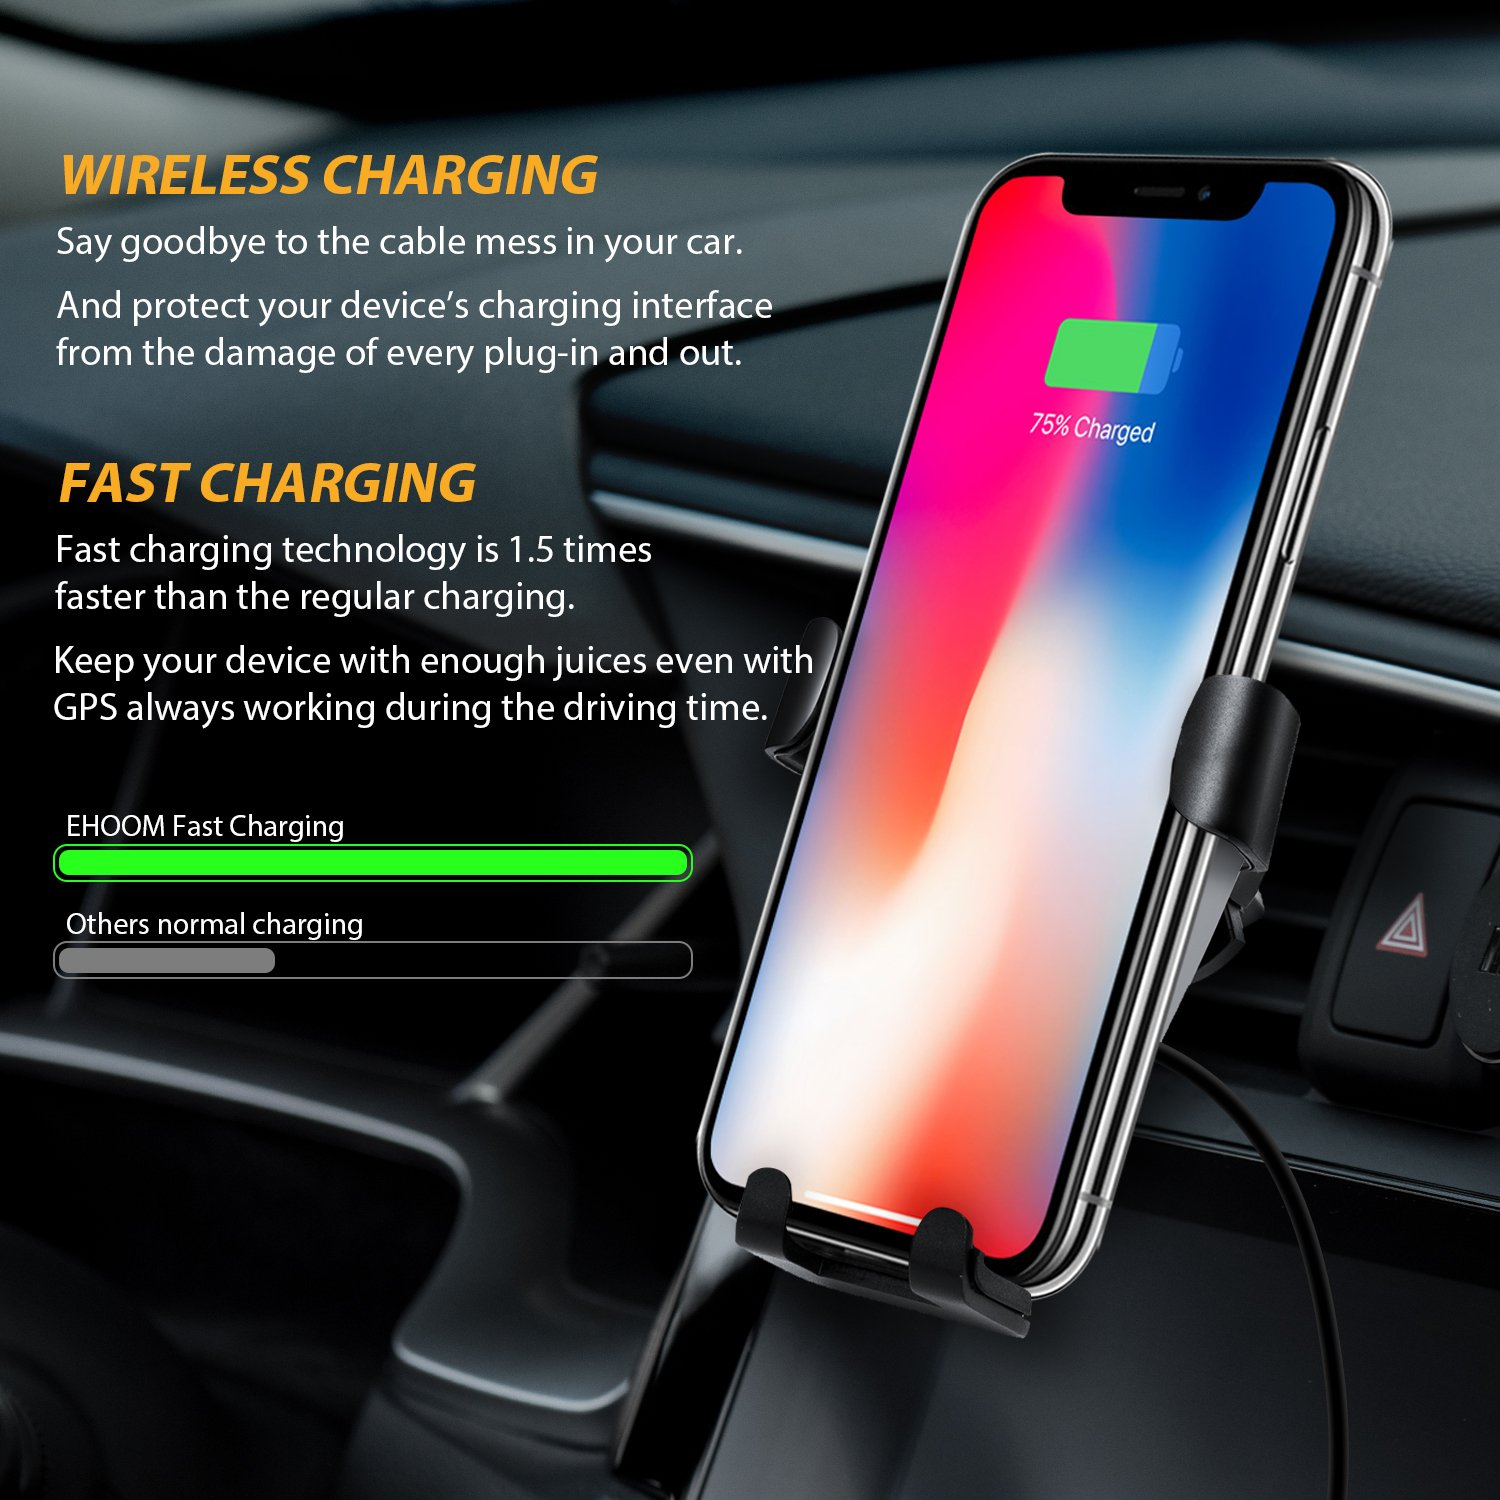 iPhone X S8 Note 8 Samsung Galaxy S9 Compatible with Qi-Enabled Devices Note 5 S8+ 8 Plus Car Charger Included EHOOM Official 4351482886 EHOOM Air Vent Phone Holder for iPhone 8 S9+ Car Wireless Charger S7 Edge